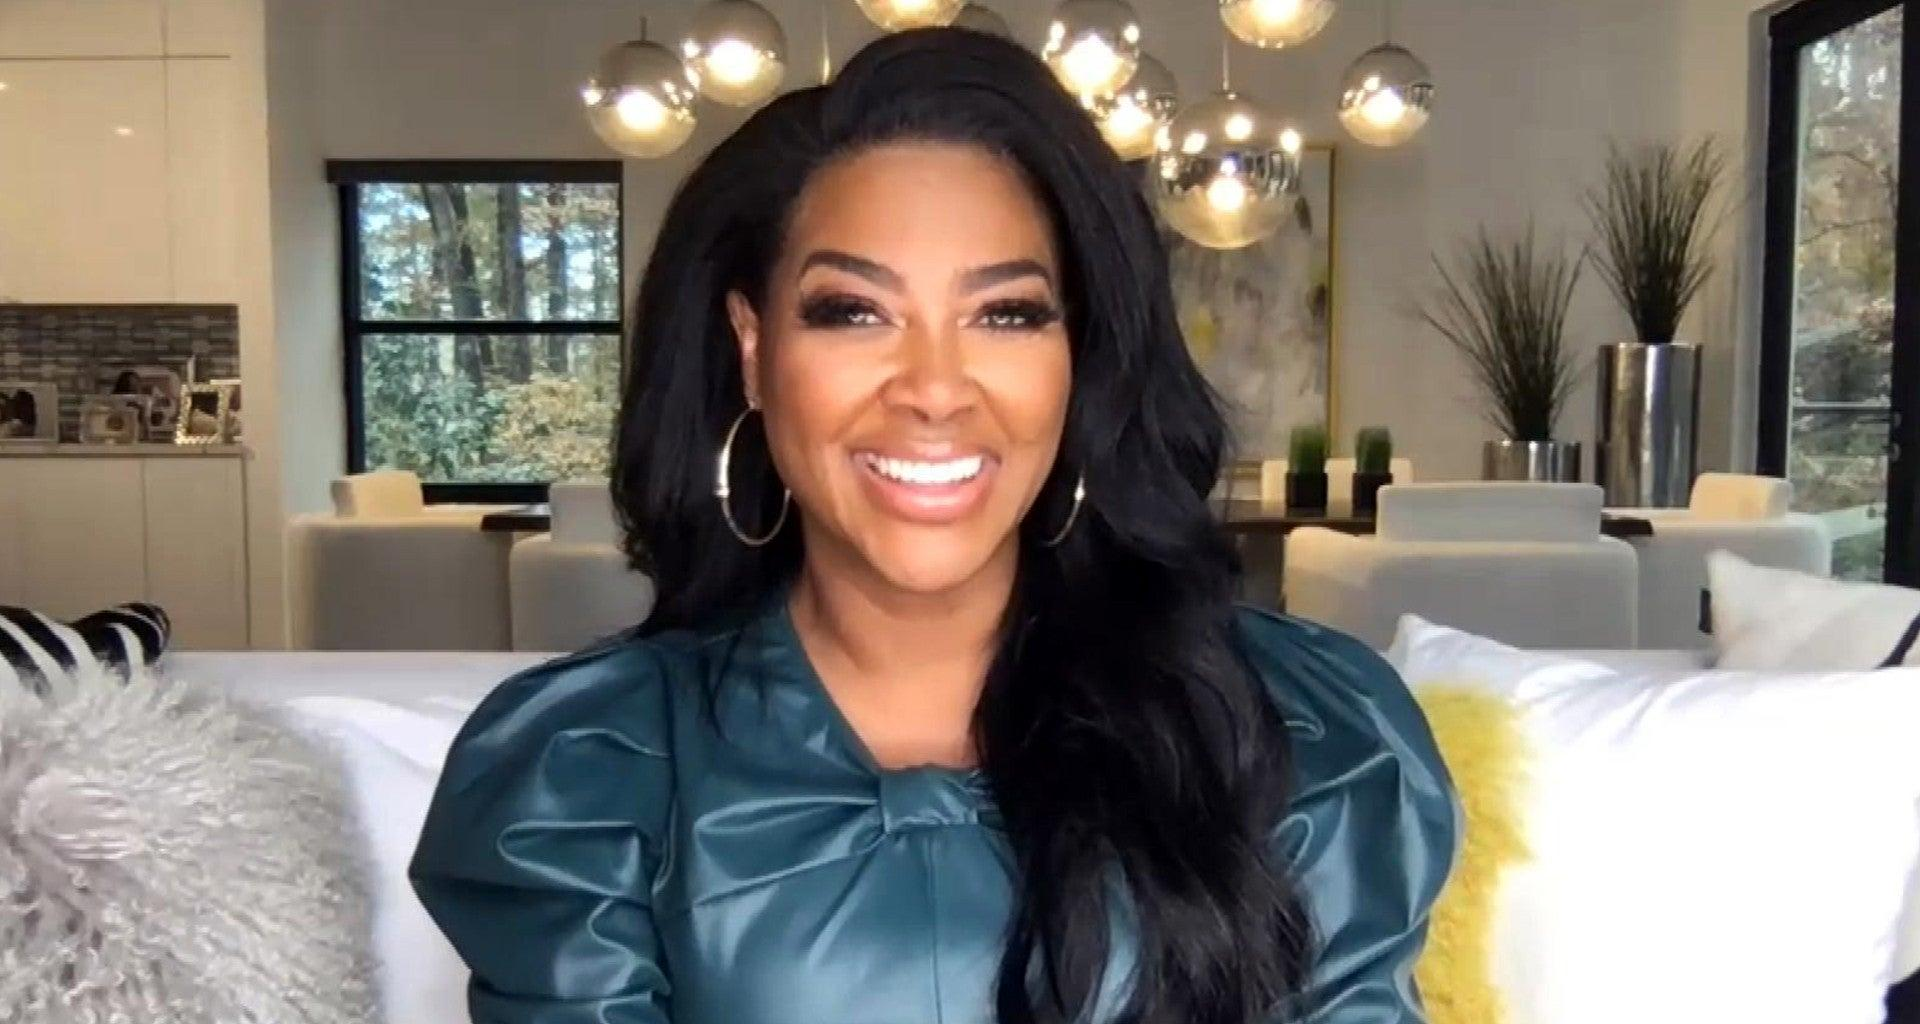 Kenya Moore Reveals The Best Episode Of This RHOA Season - See The Clip